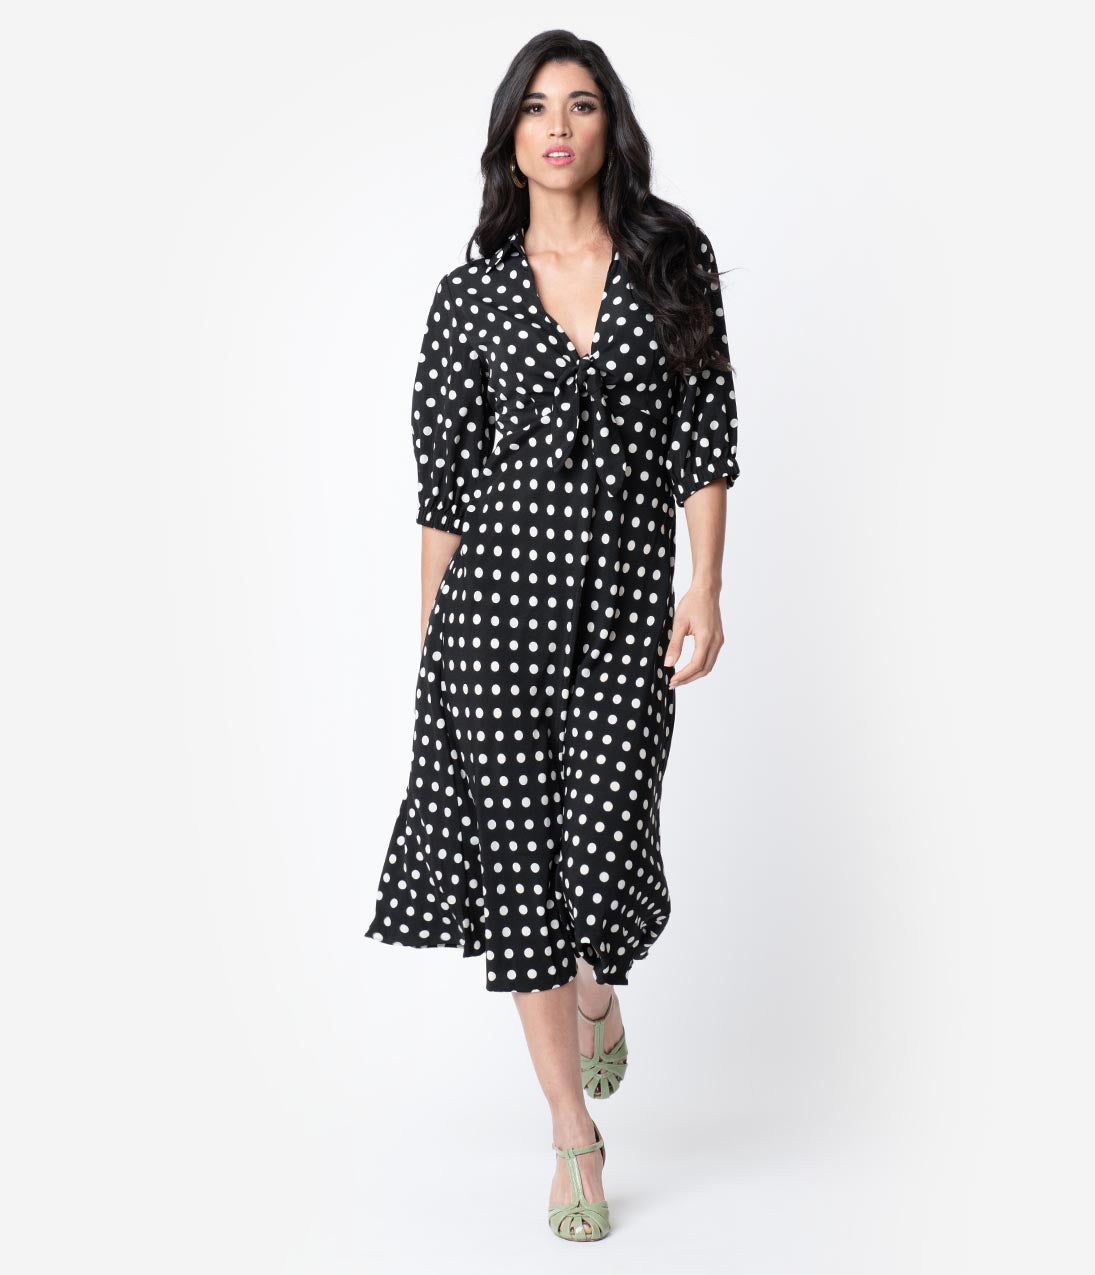 Vintage Tea Dresses, Floral Tea Dresses, Tea Length Dresses 1940S Style Black  Ivory Polka Dot Sleeved Midi Dress $58.00 AT vintagedancer.com